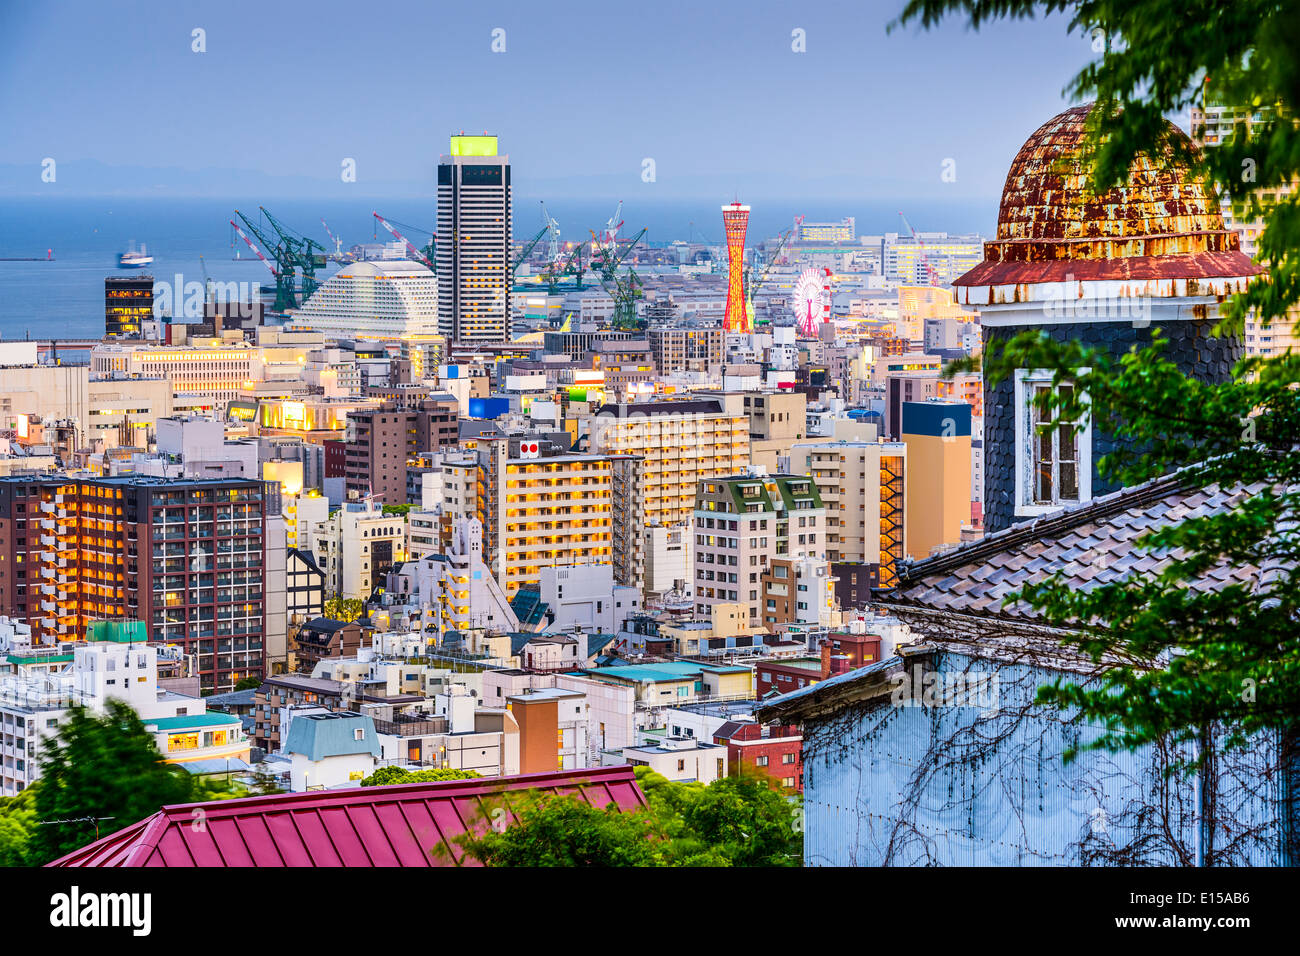 Kobe, Japan skyline from the Kitano District. - Stock Image